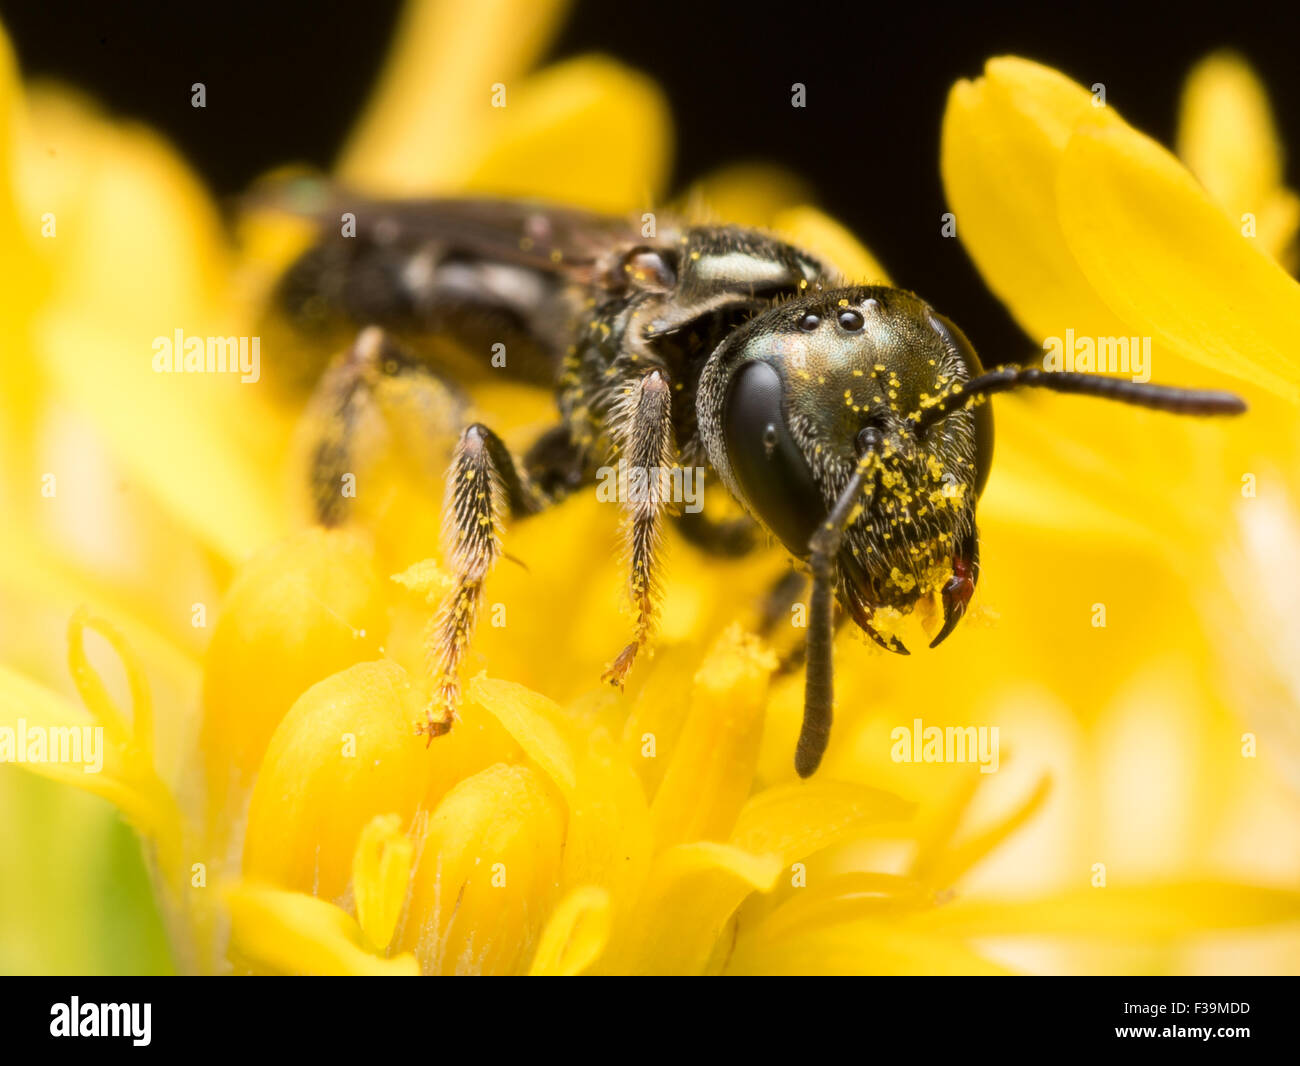 Dark Sweat bee (Lasioglossum) extracts pollen from a yellow flower - Stock Image